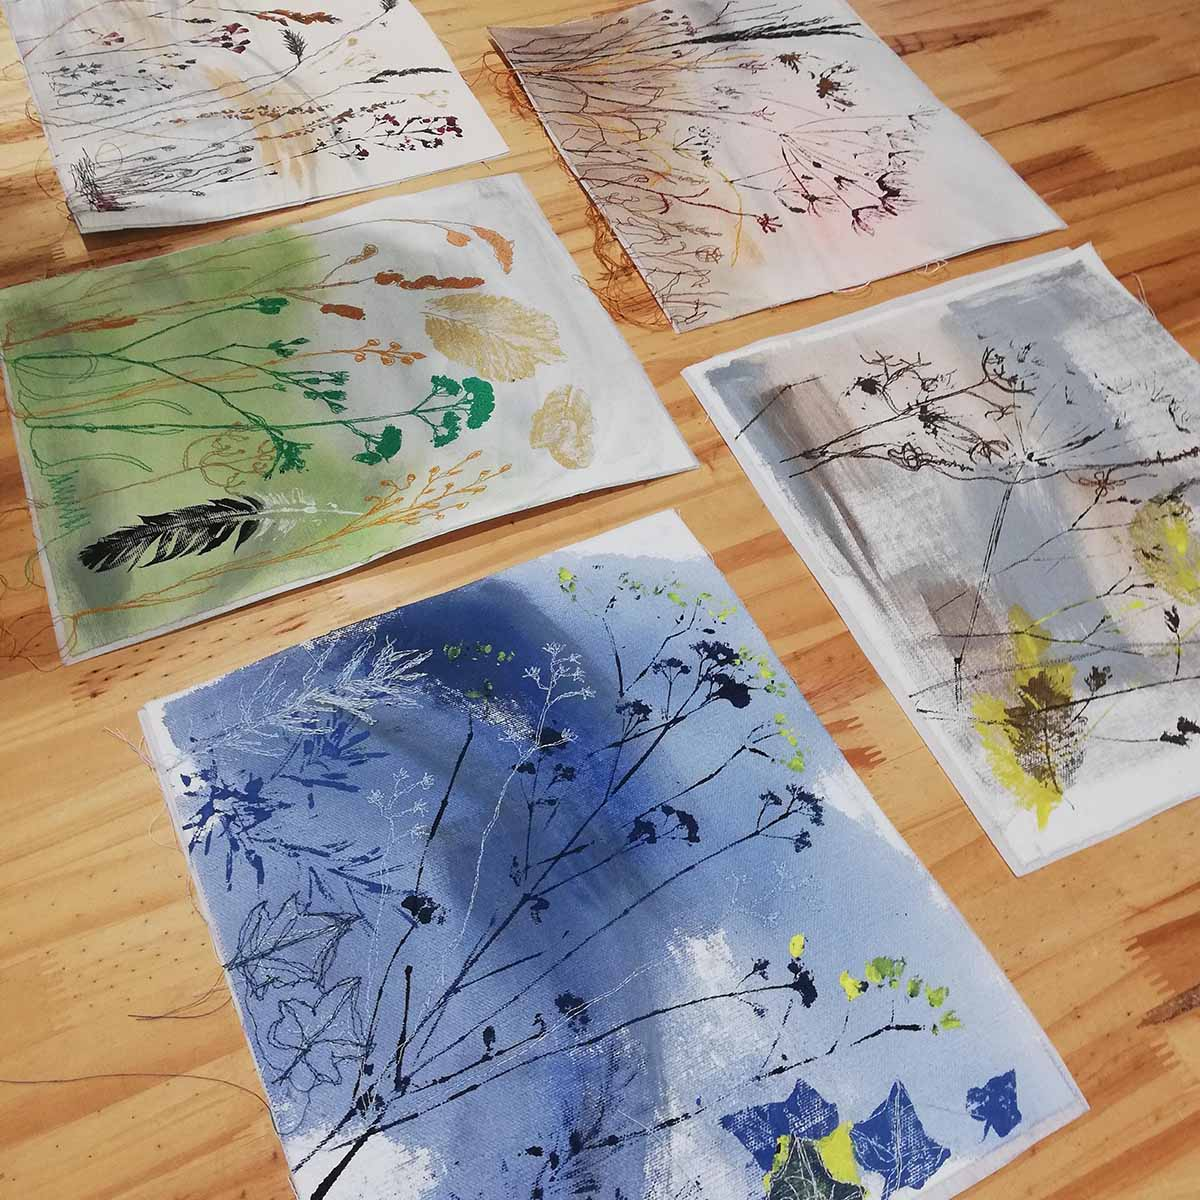 mono-printing-workshop-with-Ellie-Hipkin-Artist